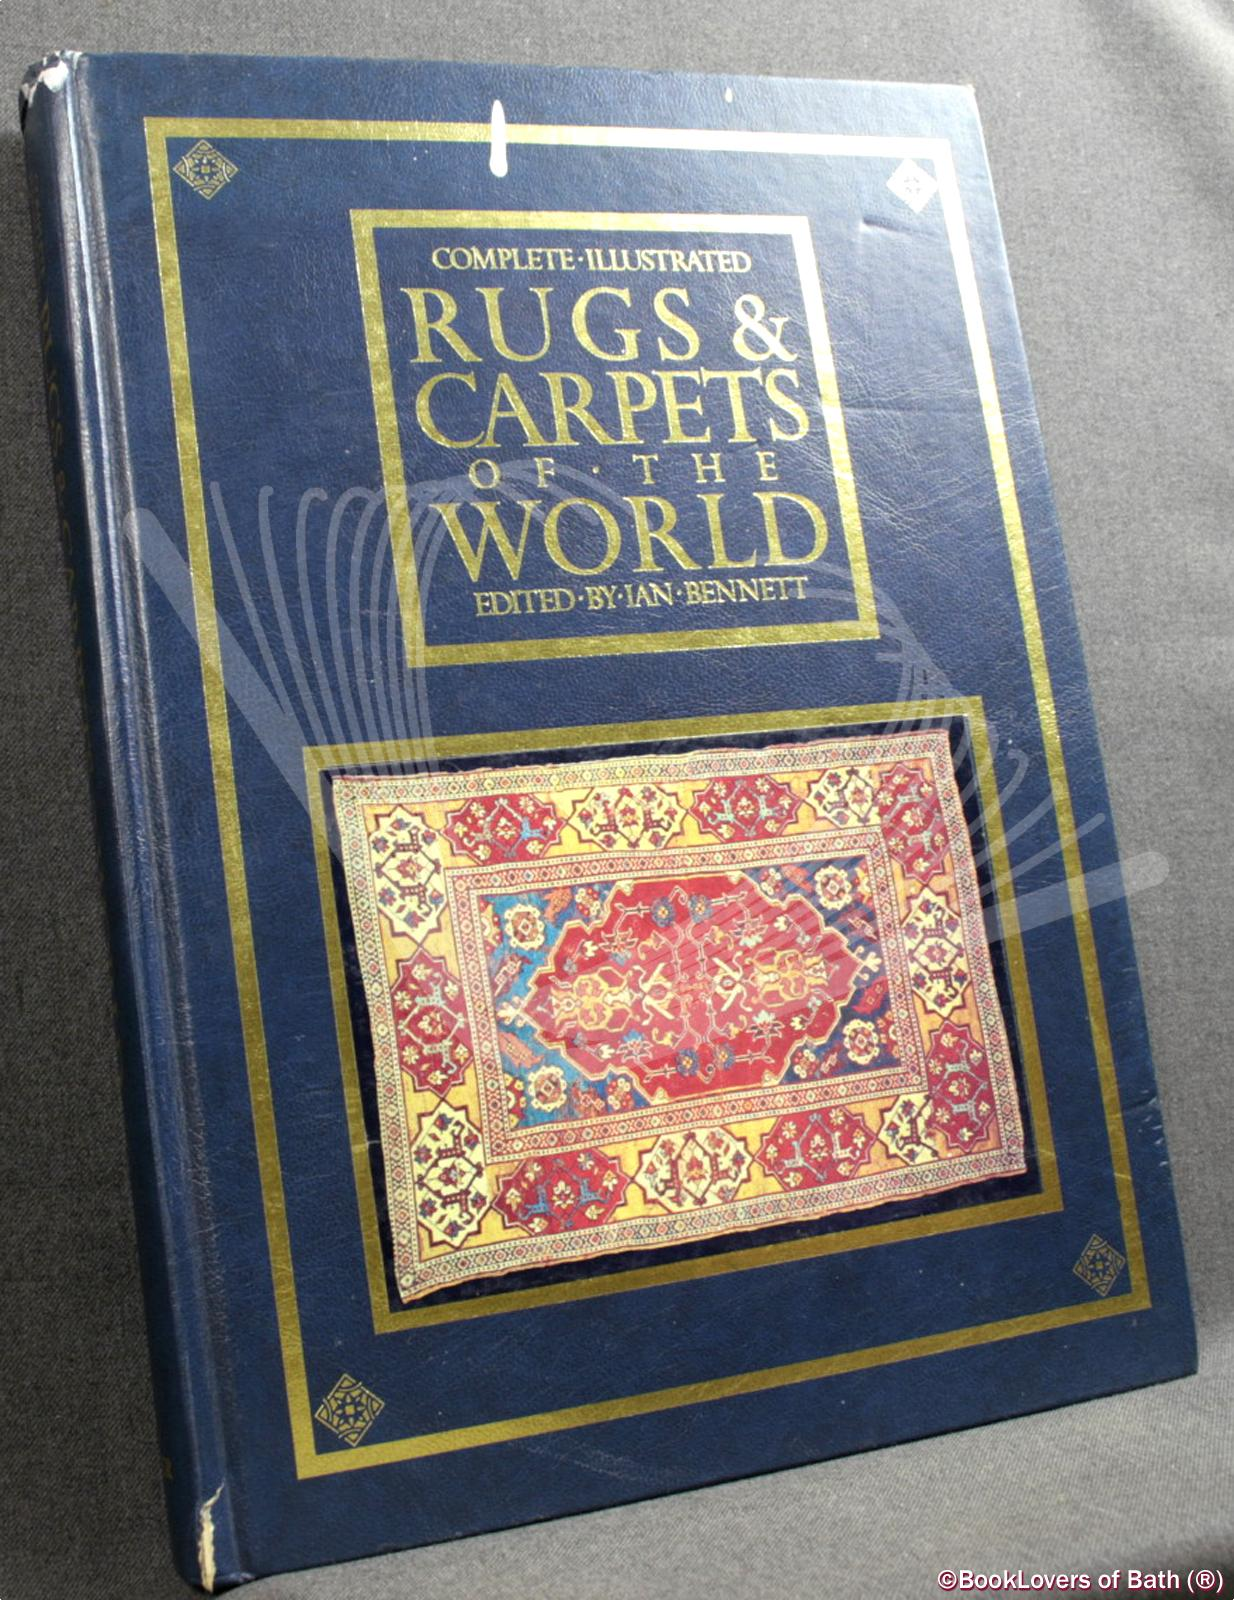 Complete Illustrated Rugs & Carpets of the World - Edited by Ian Bennett